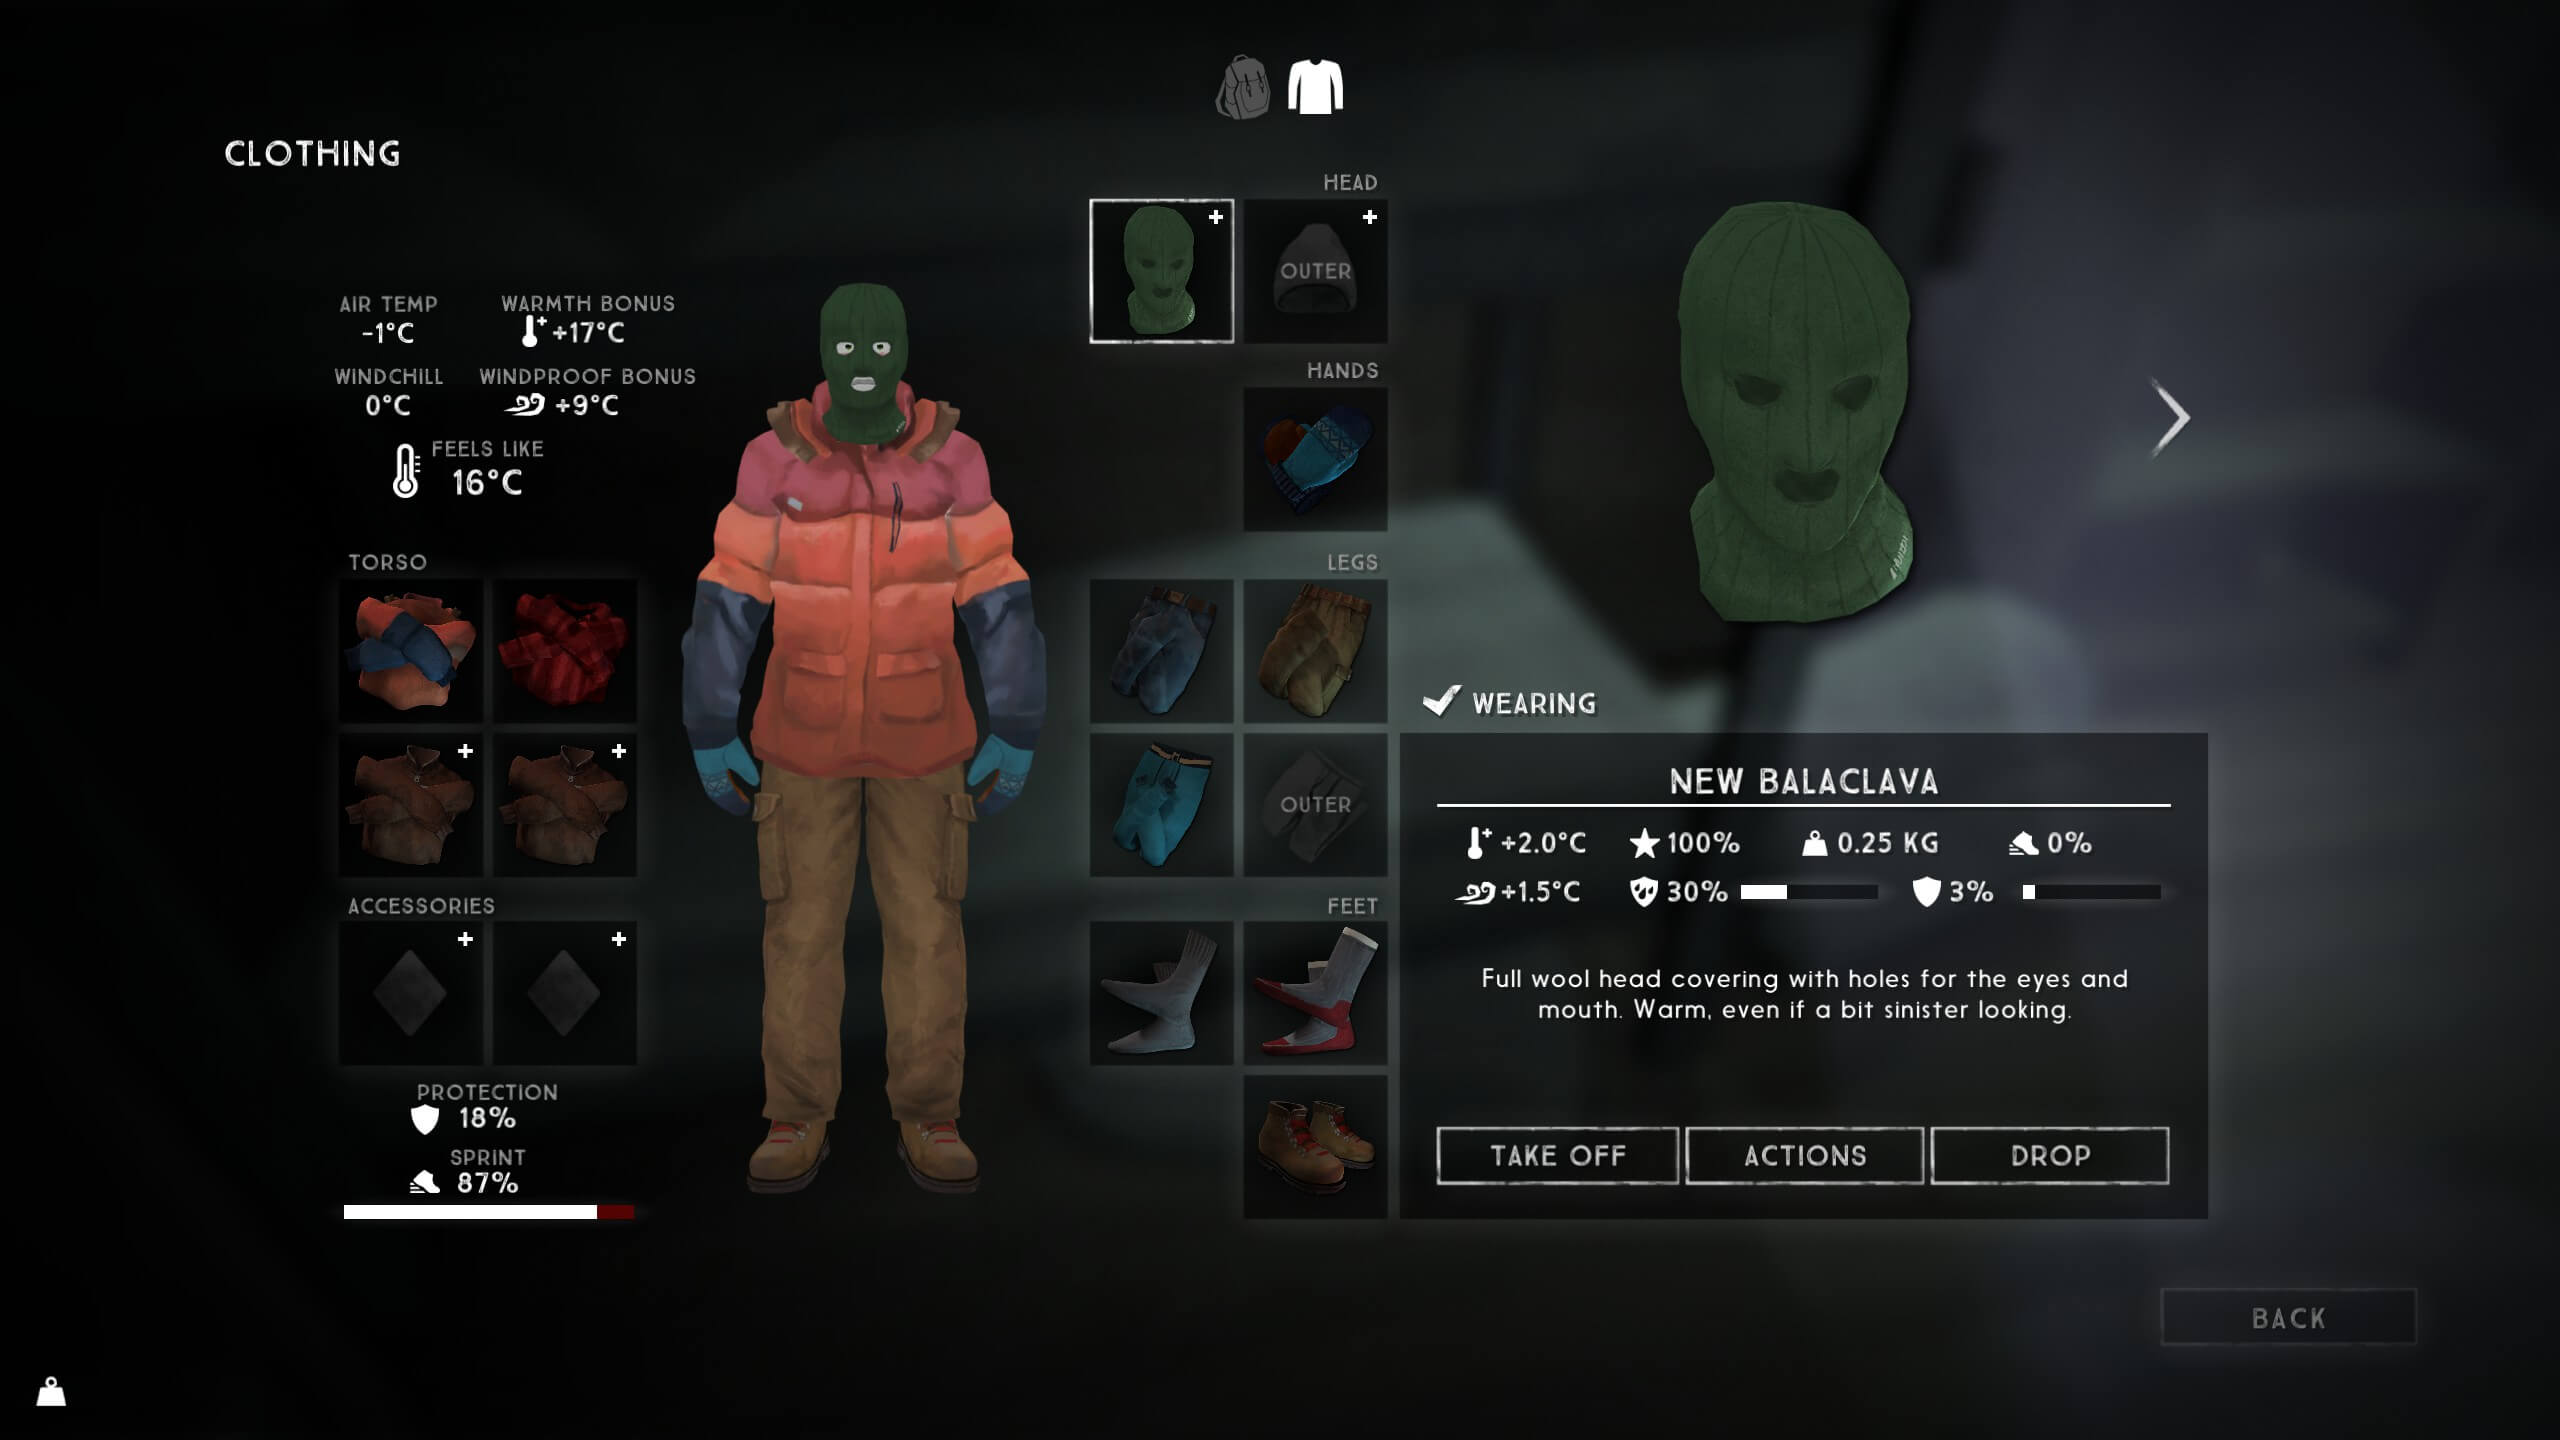 long dark best clothes, the long dark accessories, the long dark best clothing, the long dark clothing, the long dark clothing chart, the long dark clothing guide